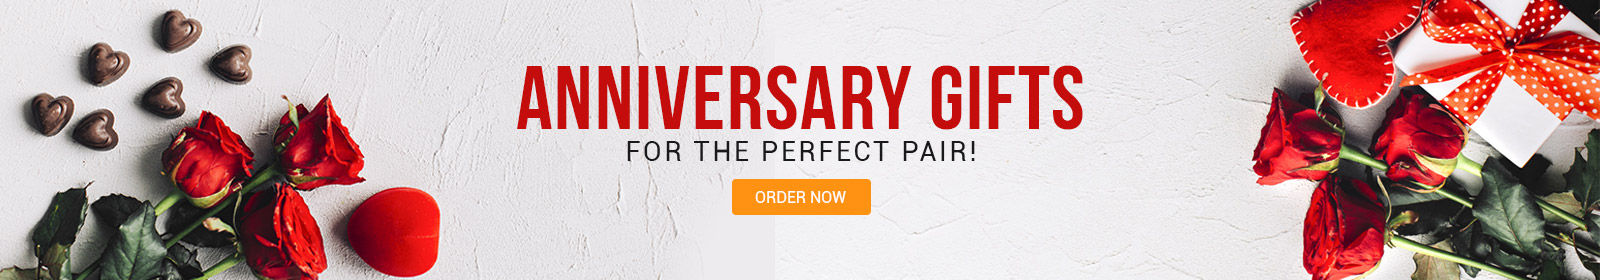 Anniversary Gifts Online